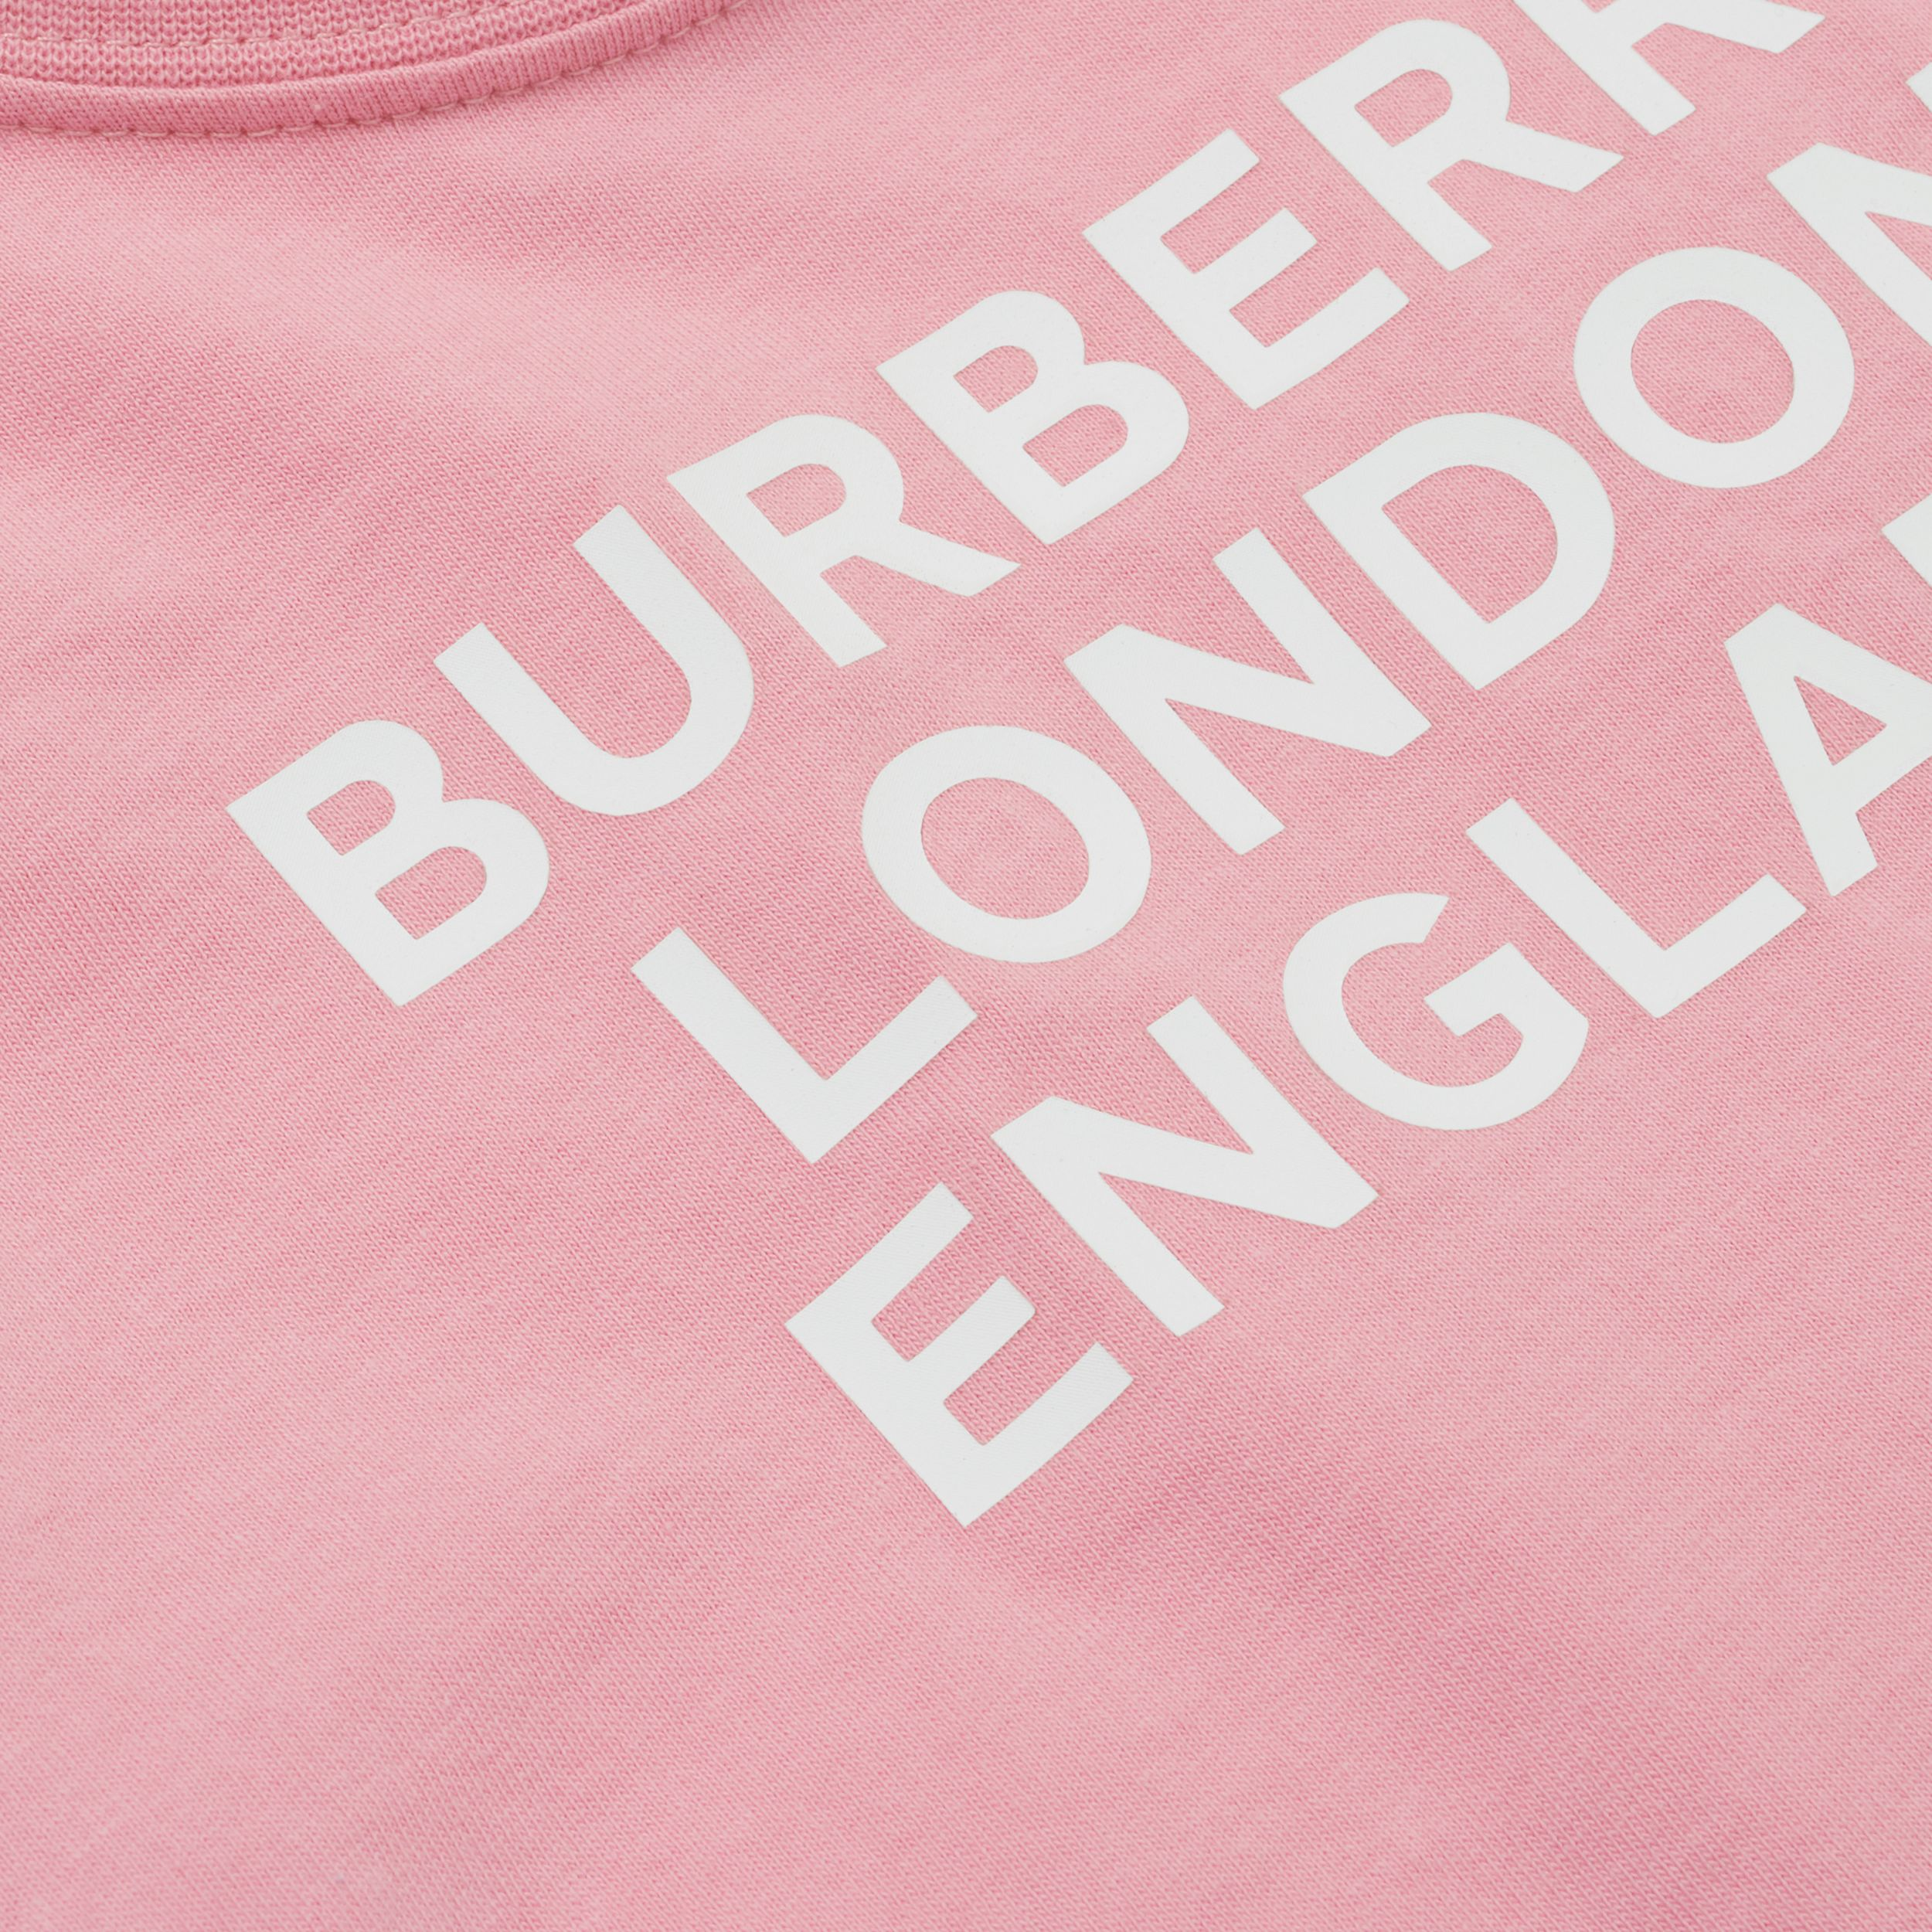 Logo Print Cotton T-shirt in Candy Pink - Children | Burberry Hong Kong S.A.R. - 2